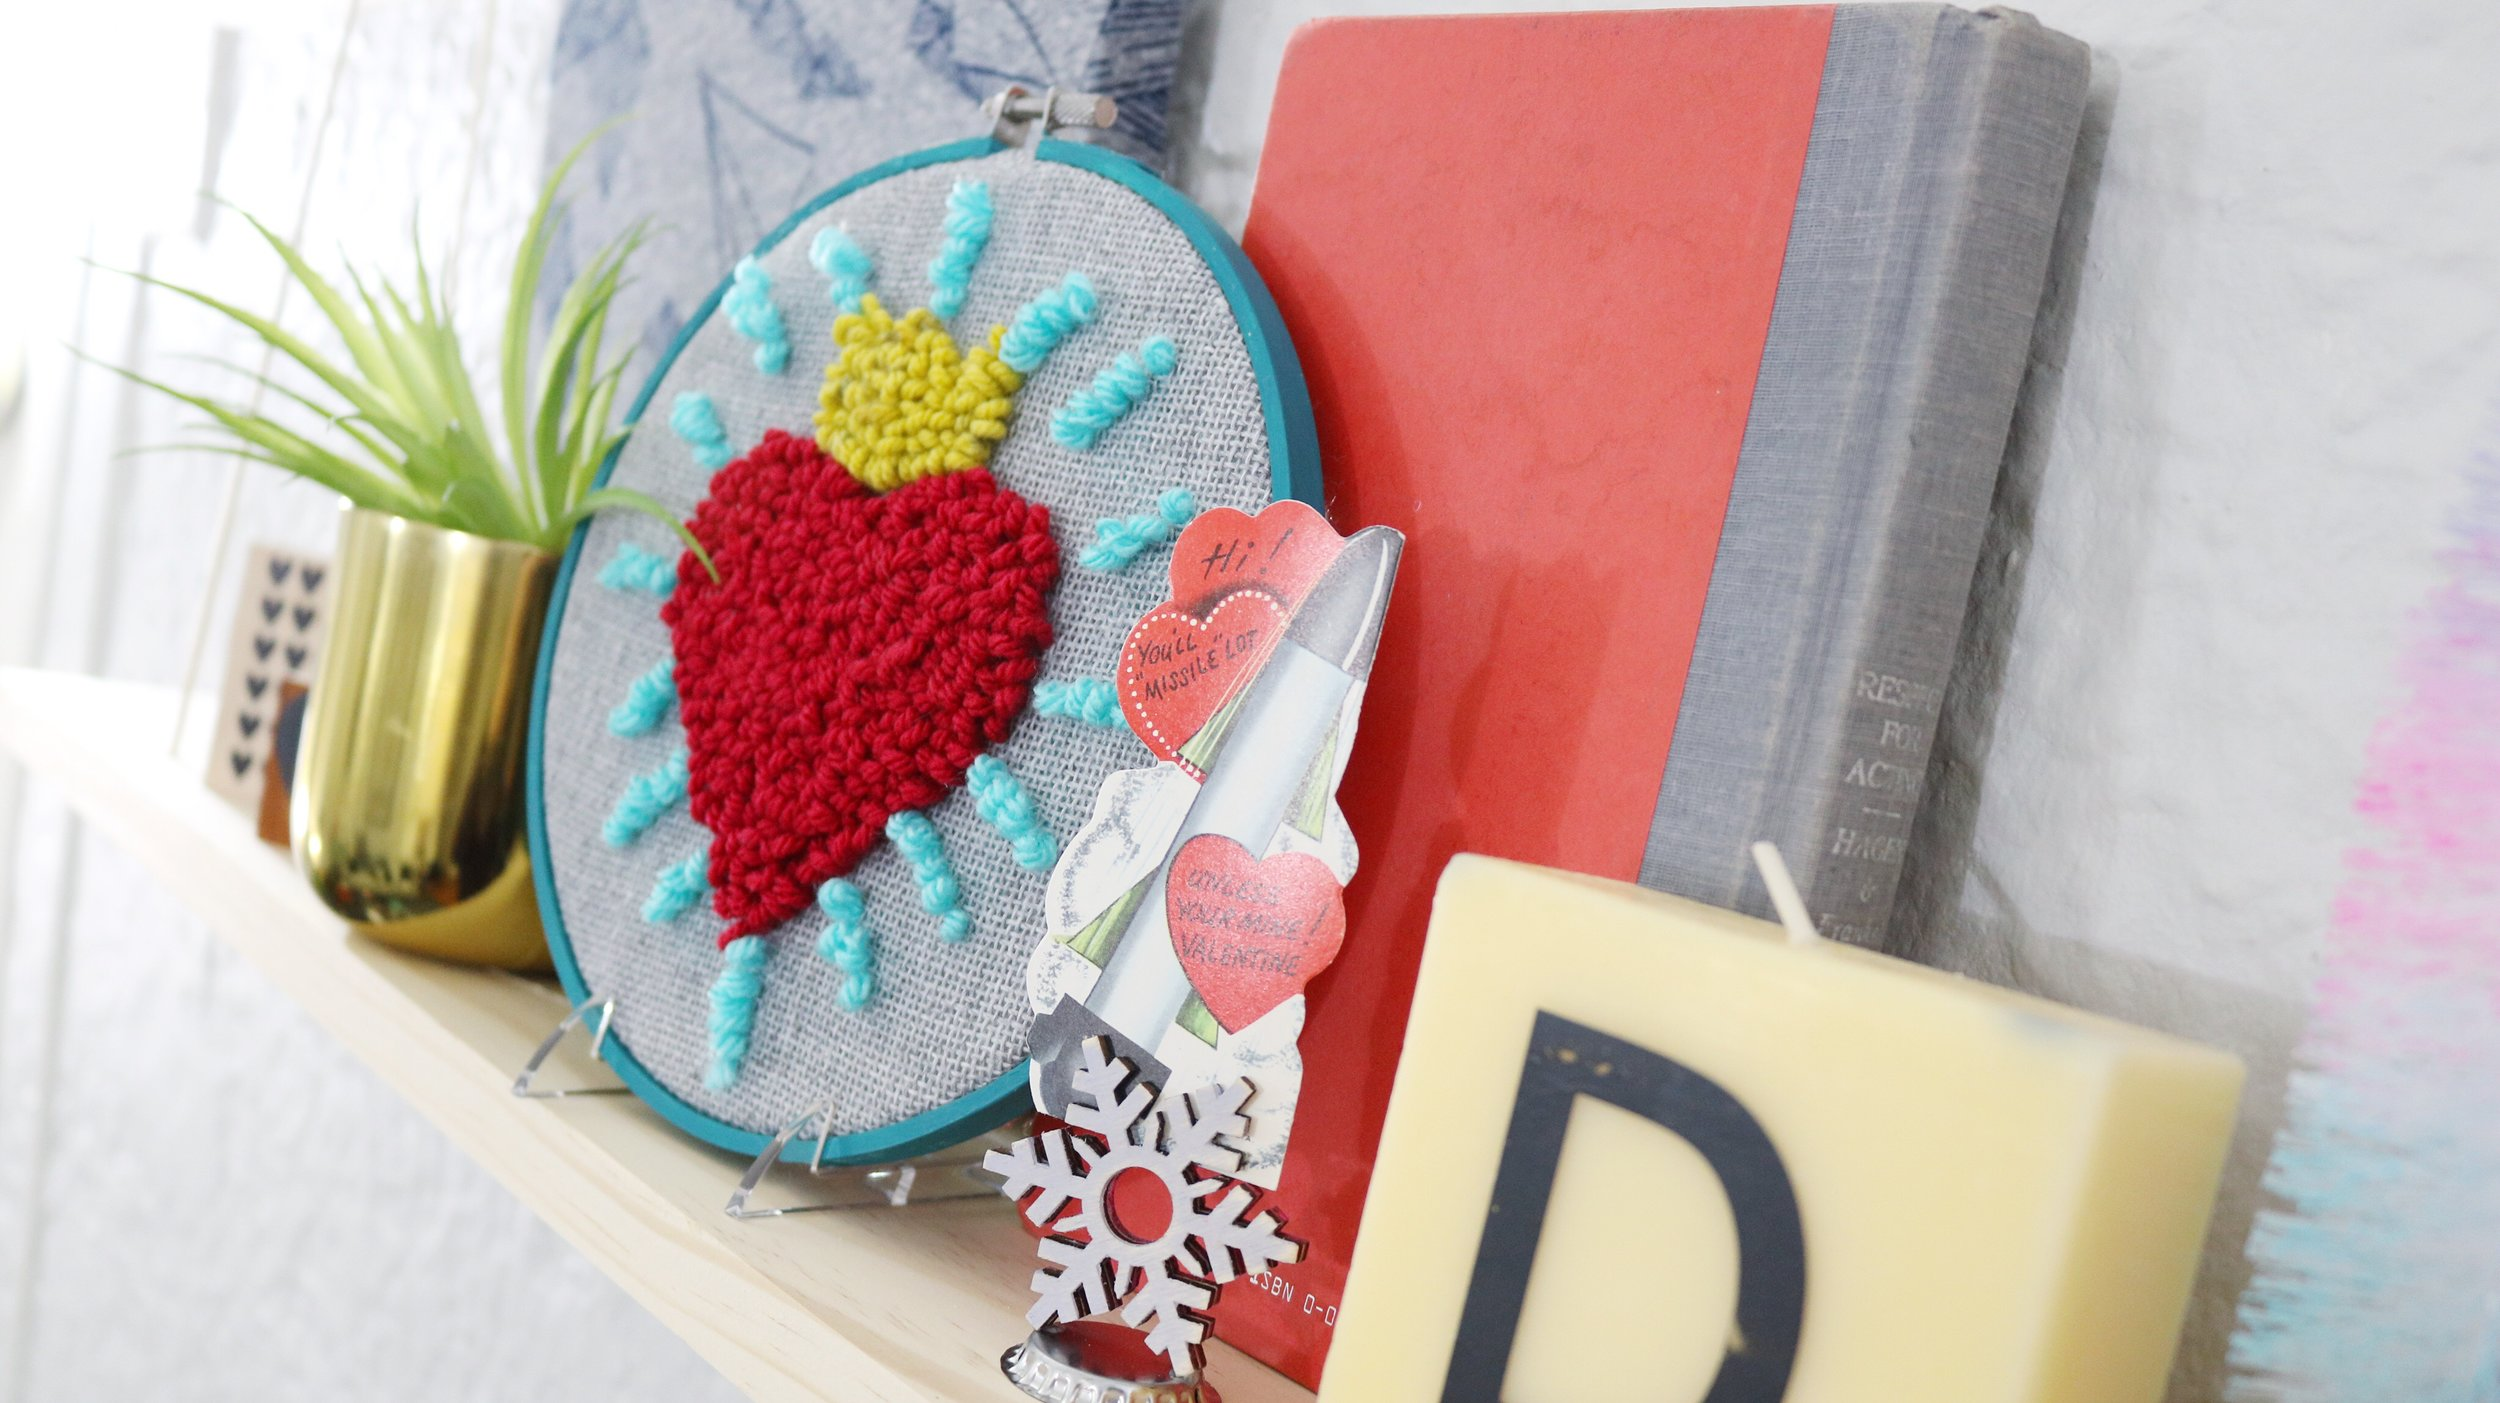 Quick Valentine's Day Punch Needle Art! Easy DIY Valentine's Day Decor!  #punchneedle #hottopunchneedle #yarn #yarnprojects #homedecor #valentinesdaydecorations